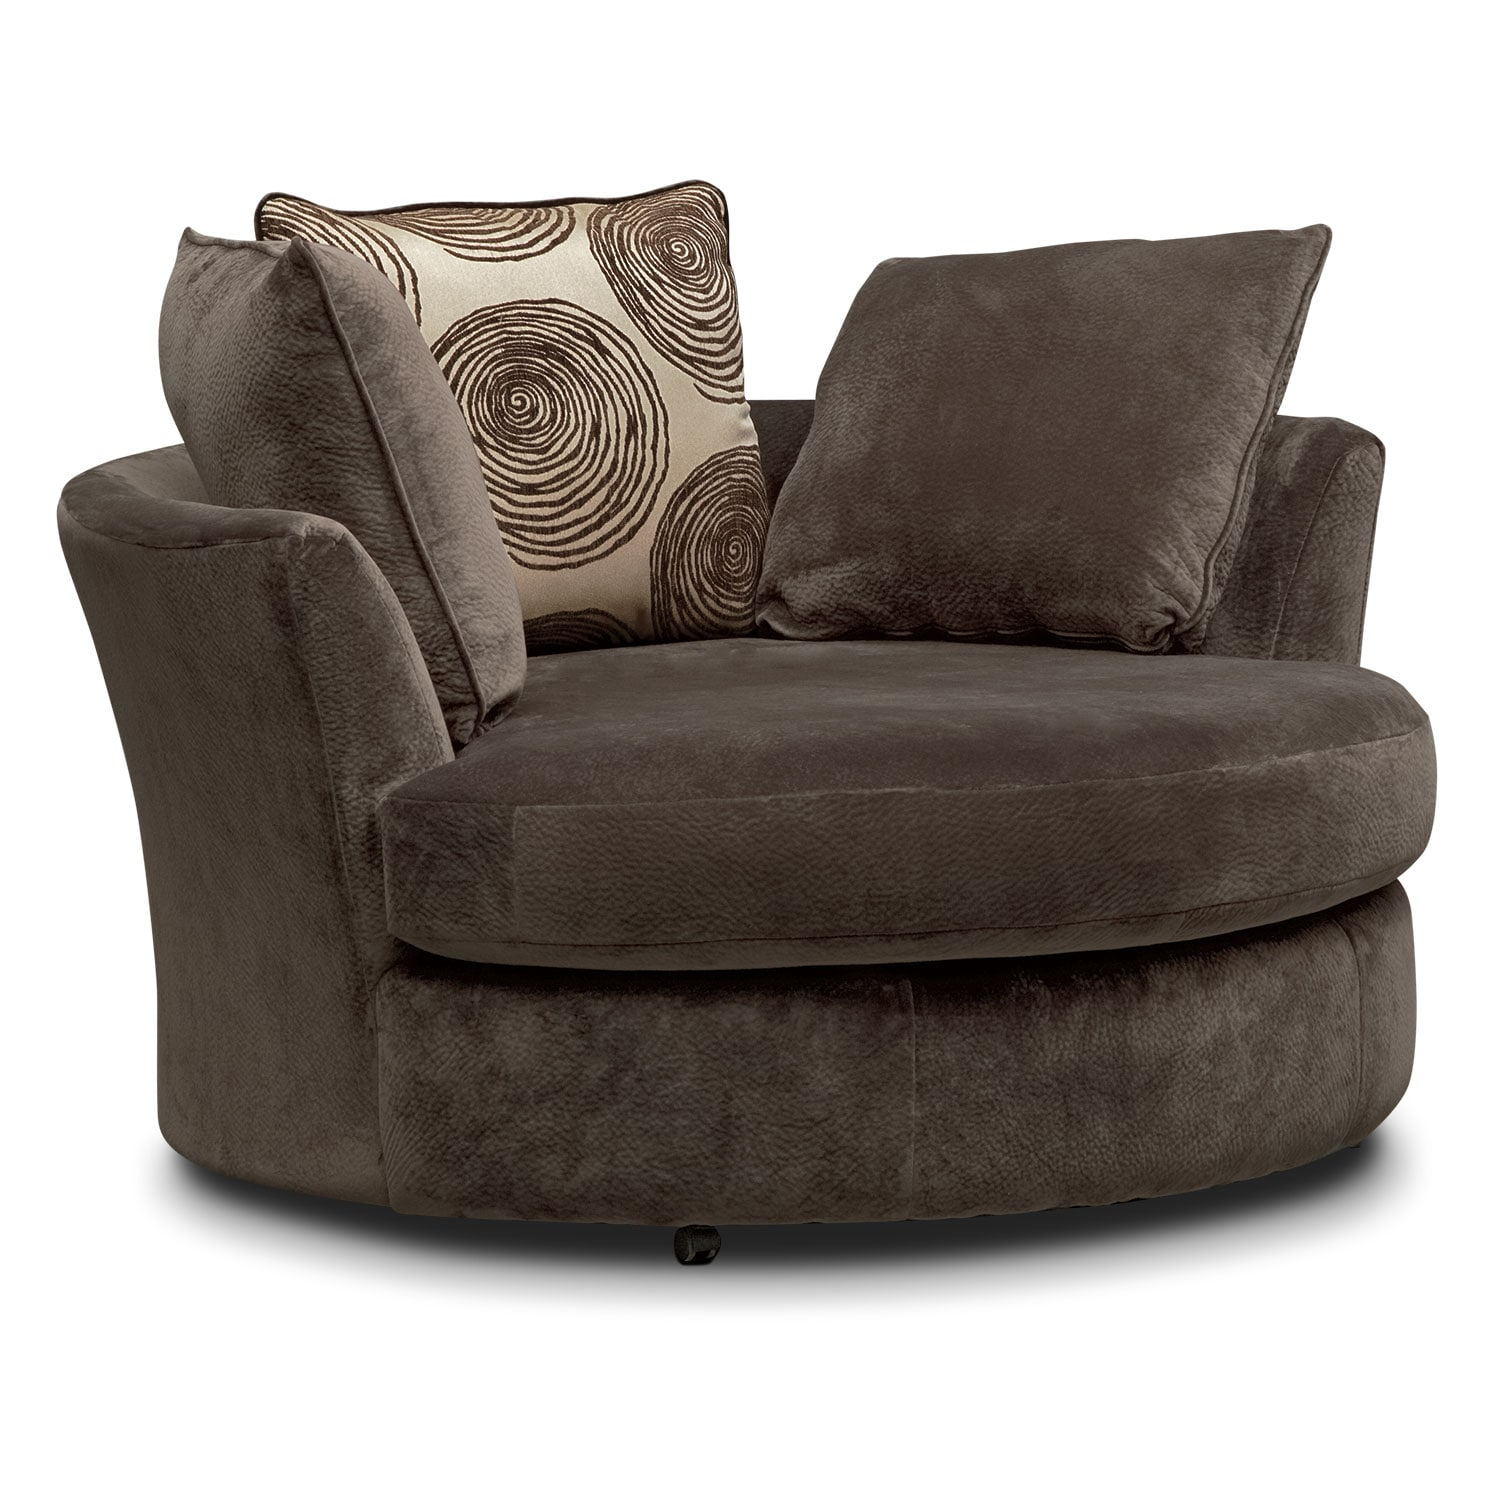 Charming Cordelle Sofa, Loveseat And Swivel Chair Set   Chocolate